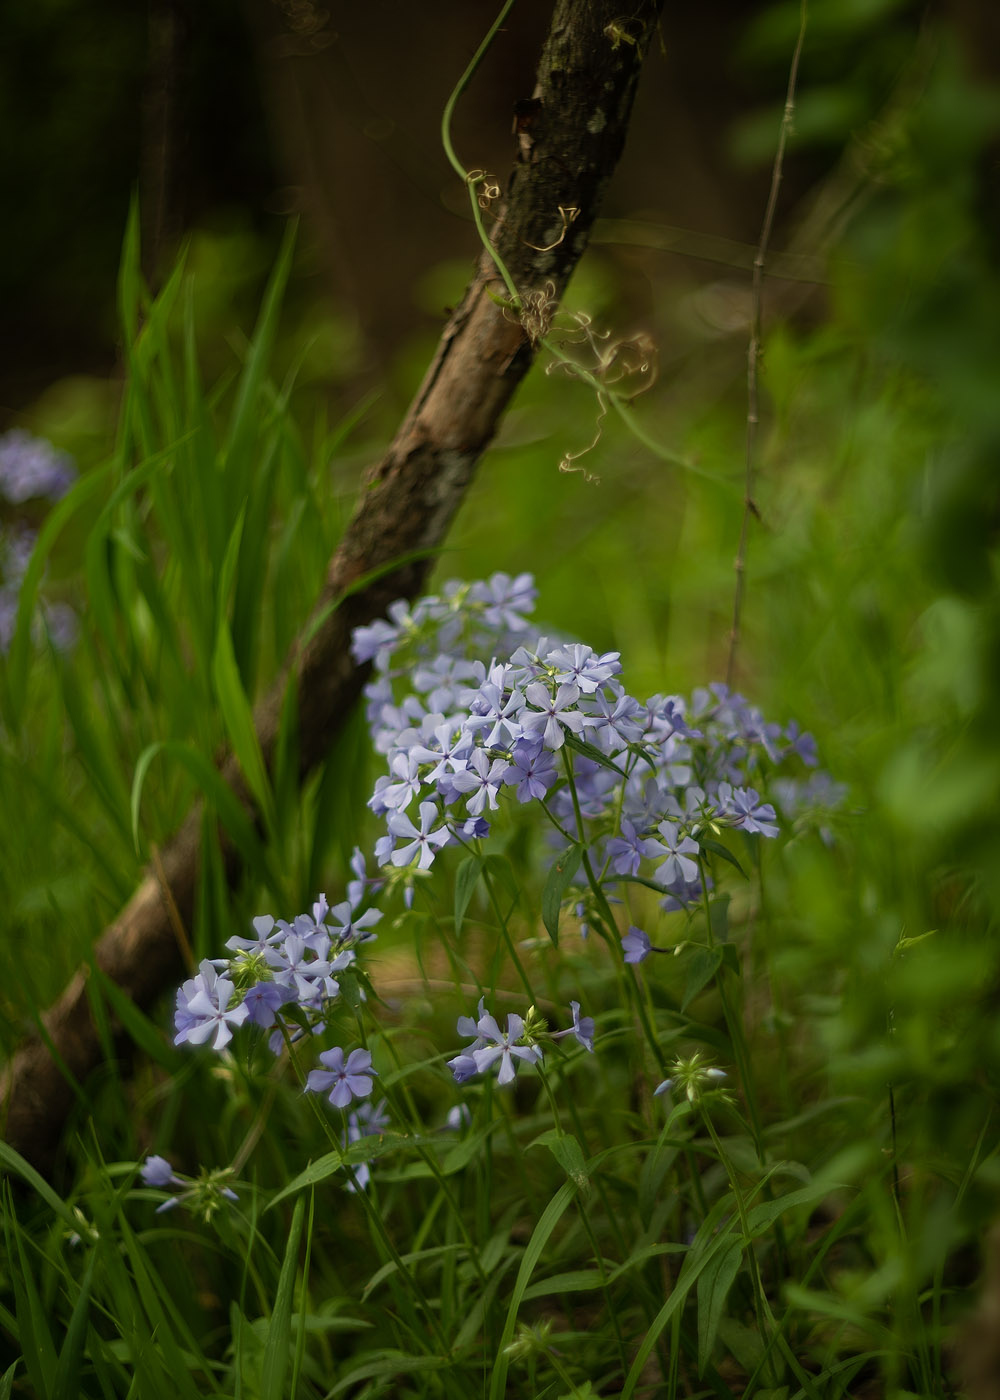 A patch of blue wild phlox wildflower next to a tree